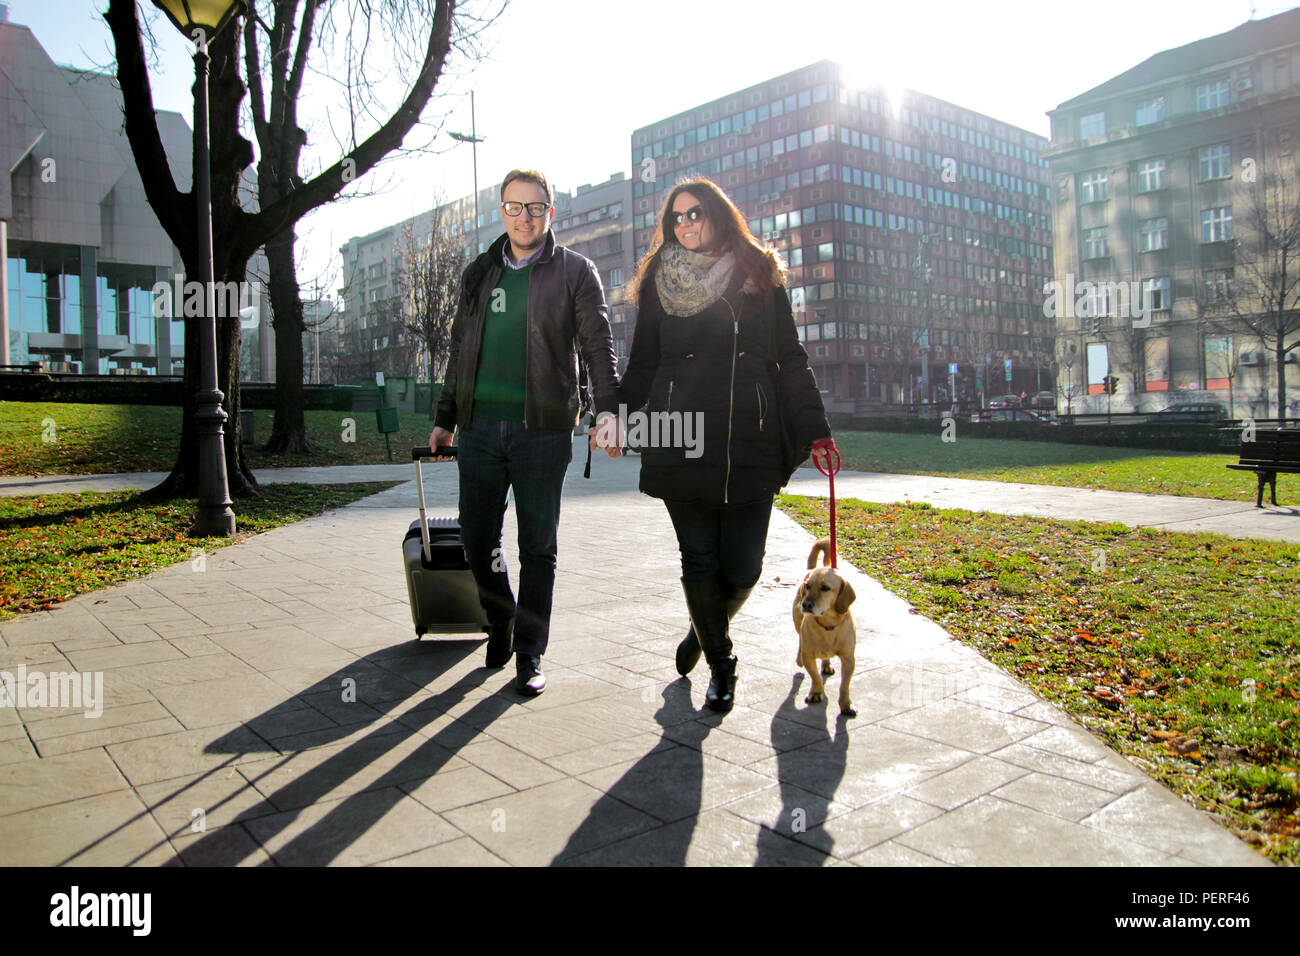 Couple with suitcase and dog walking in the park early morning. Happy young couple walking through the park with adorable dog and enjoying. - Stock Image